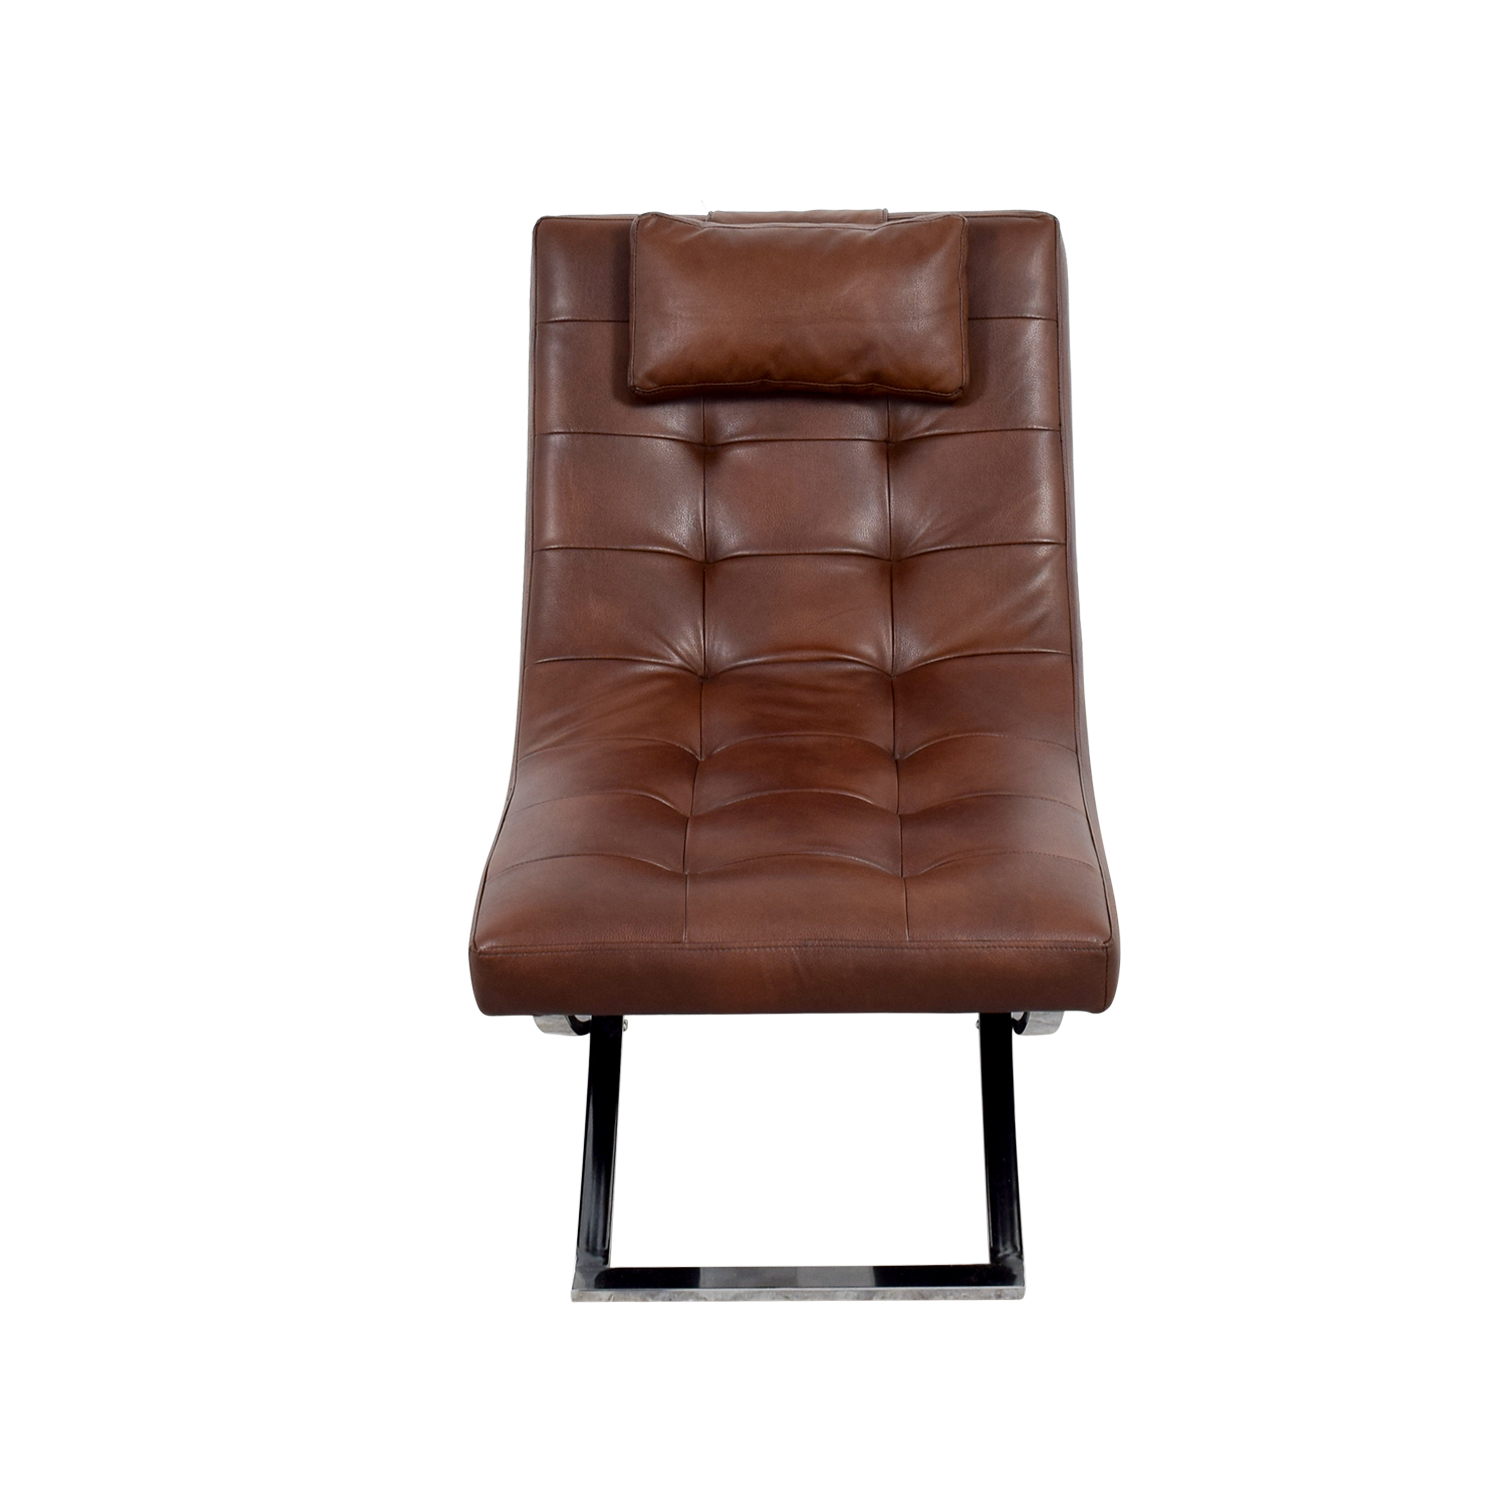 Raymour & Flanigan Raymour & Flanigan Brown Leather Chair on sale